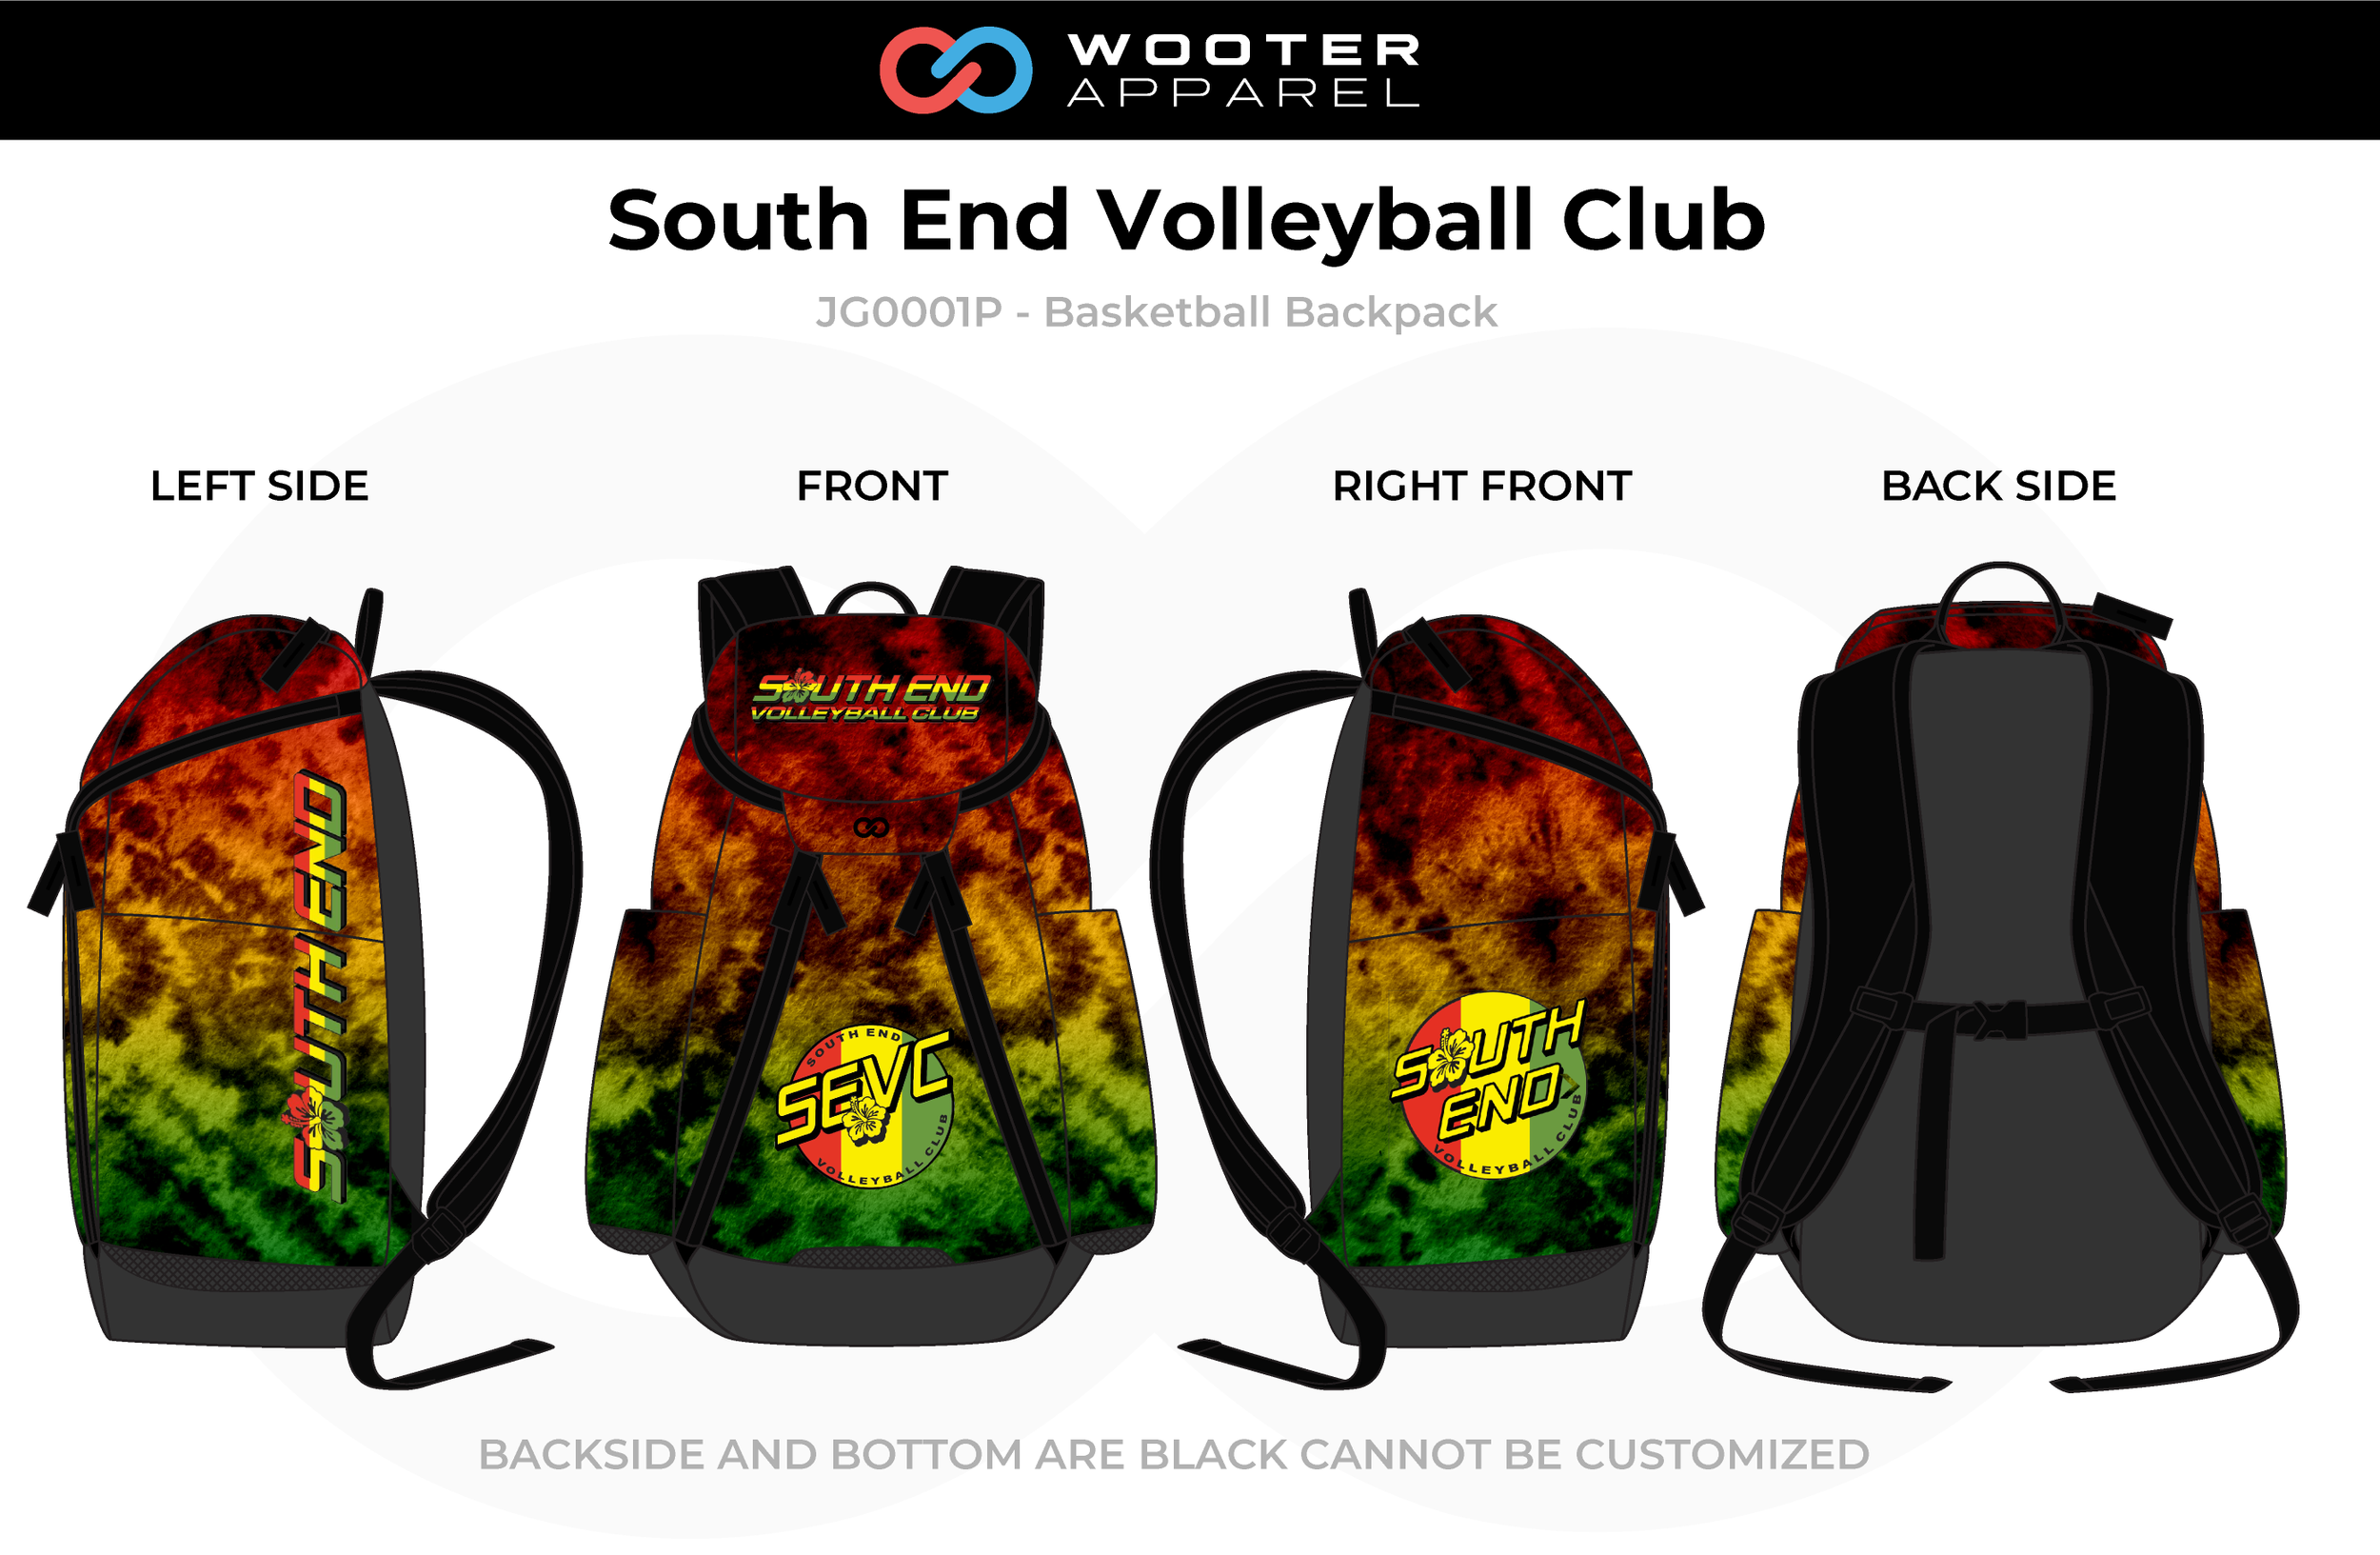 2018-10-05 South End Volleyball Club Backpack (Acid Wash).png